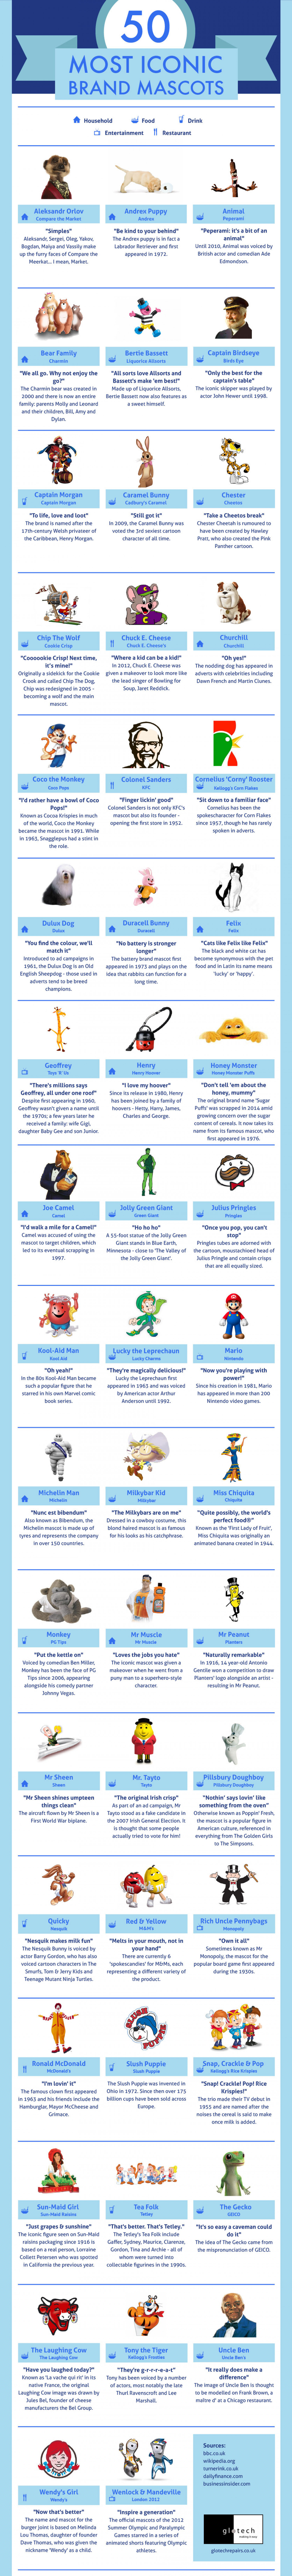 The 50 Most Iconic Brand Mascots Infographic